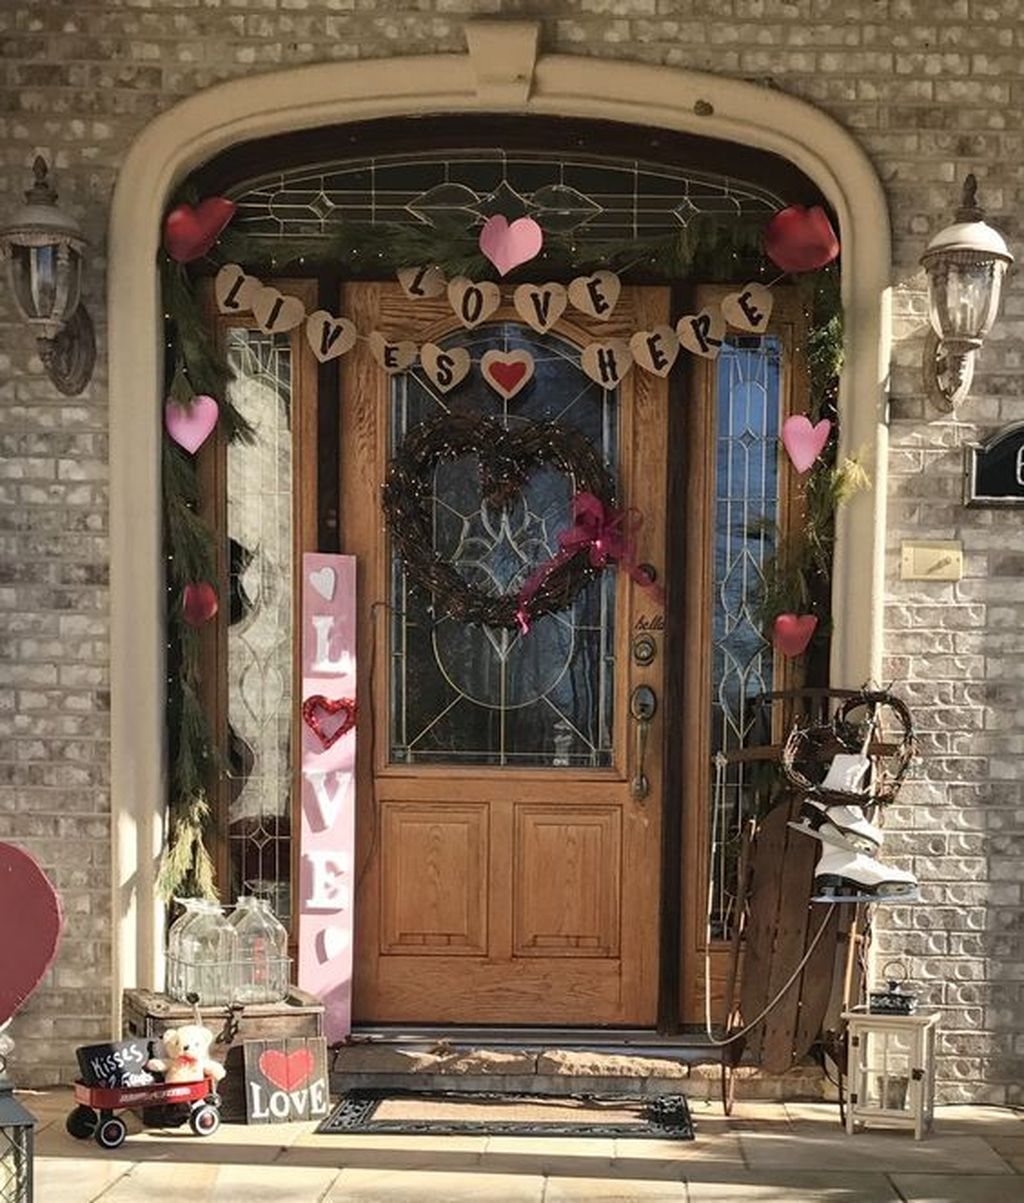 Inspiring Outdoor Valentine Decor Ideas That You Definitely Like 32